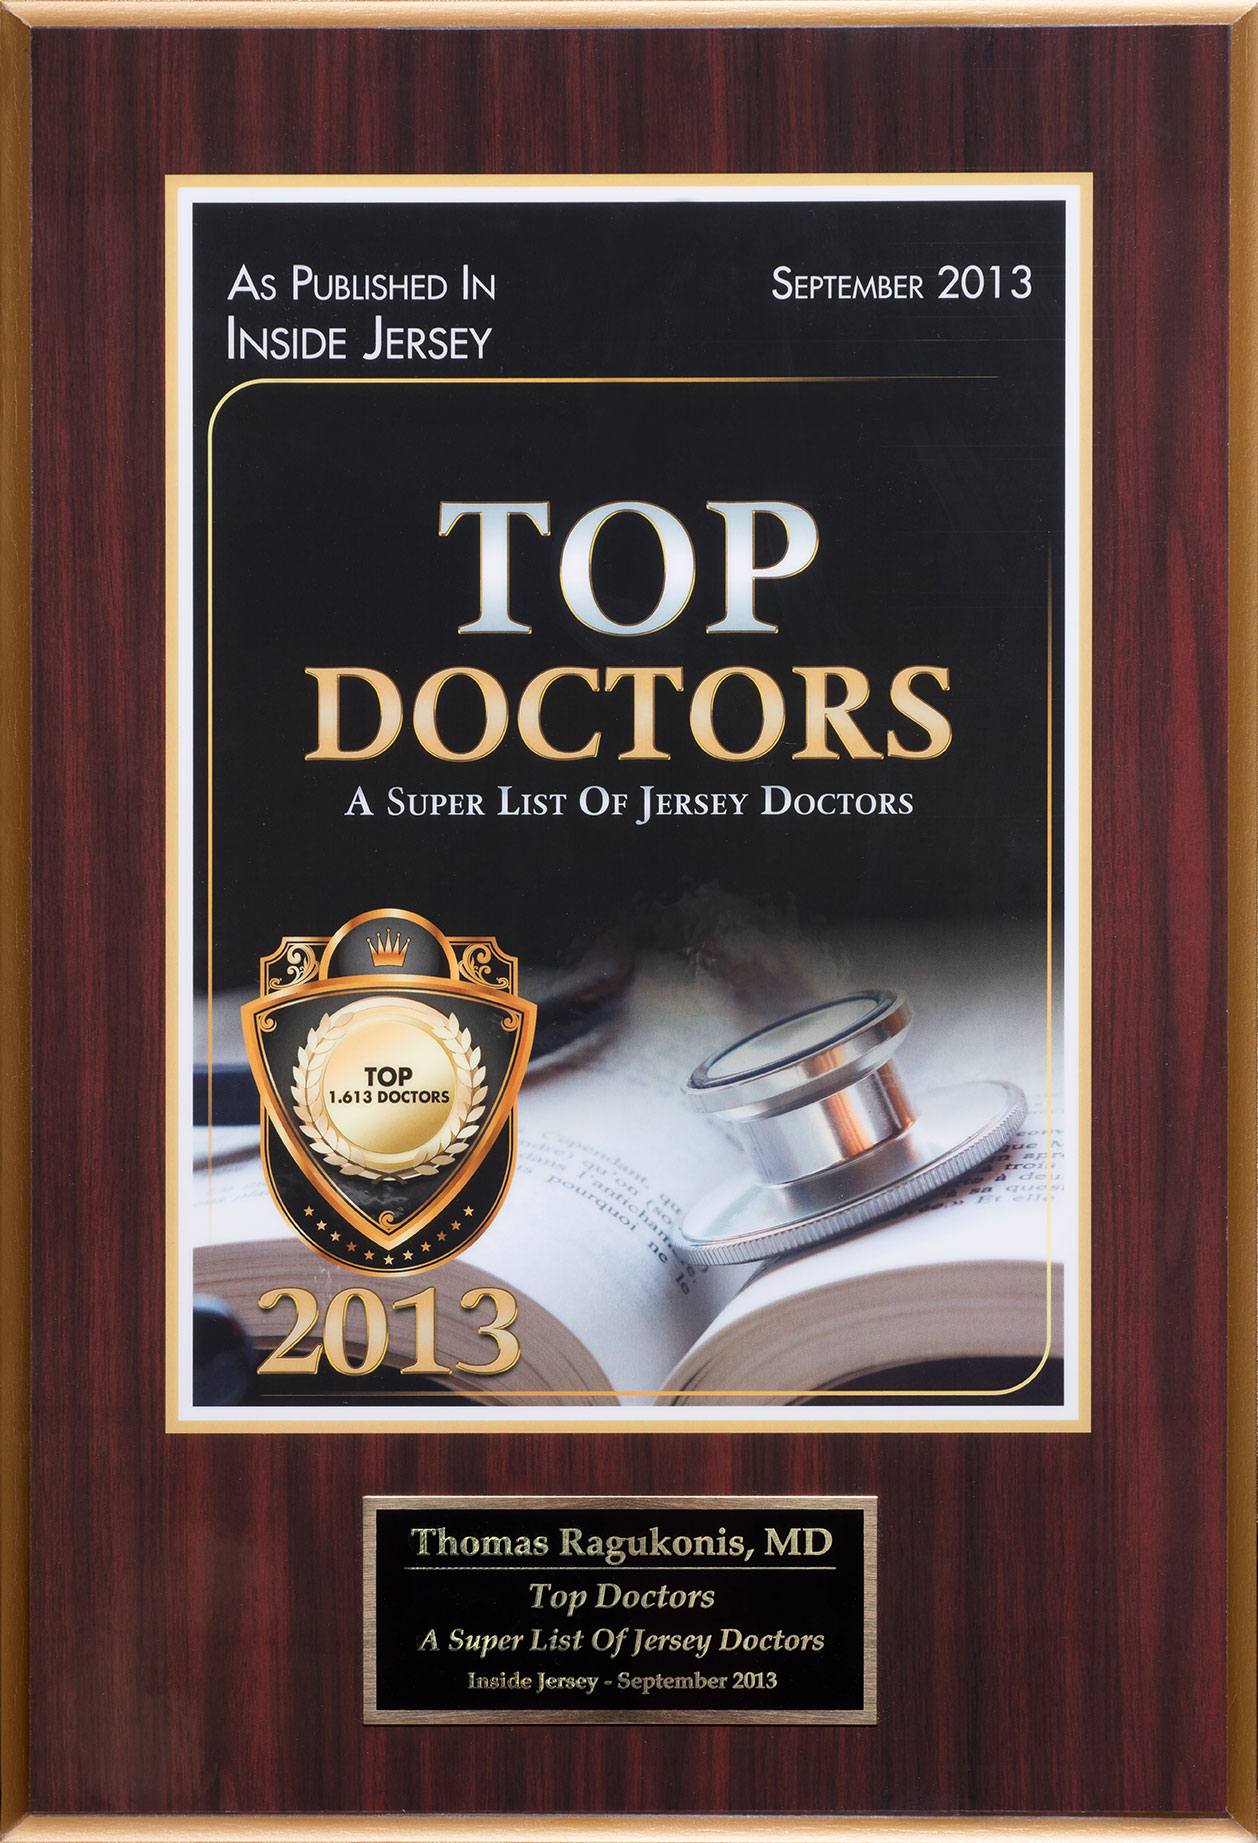 Inside Jersey Magazine Top Doctors 2013